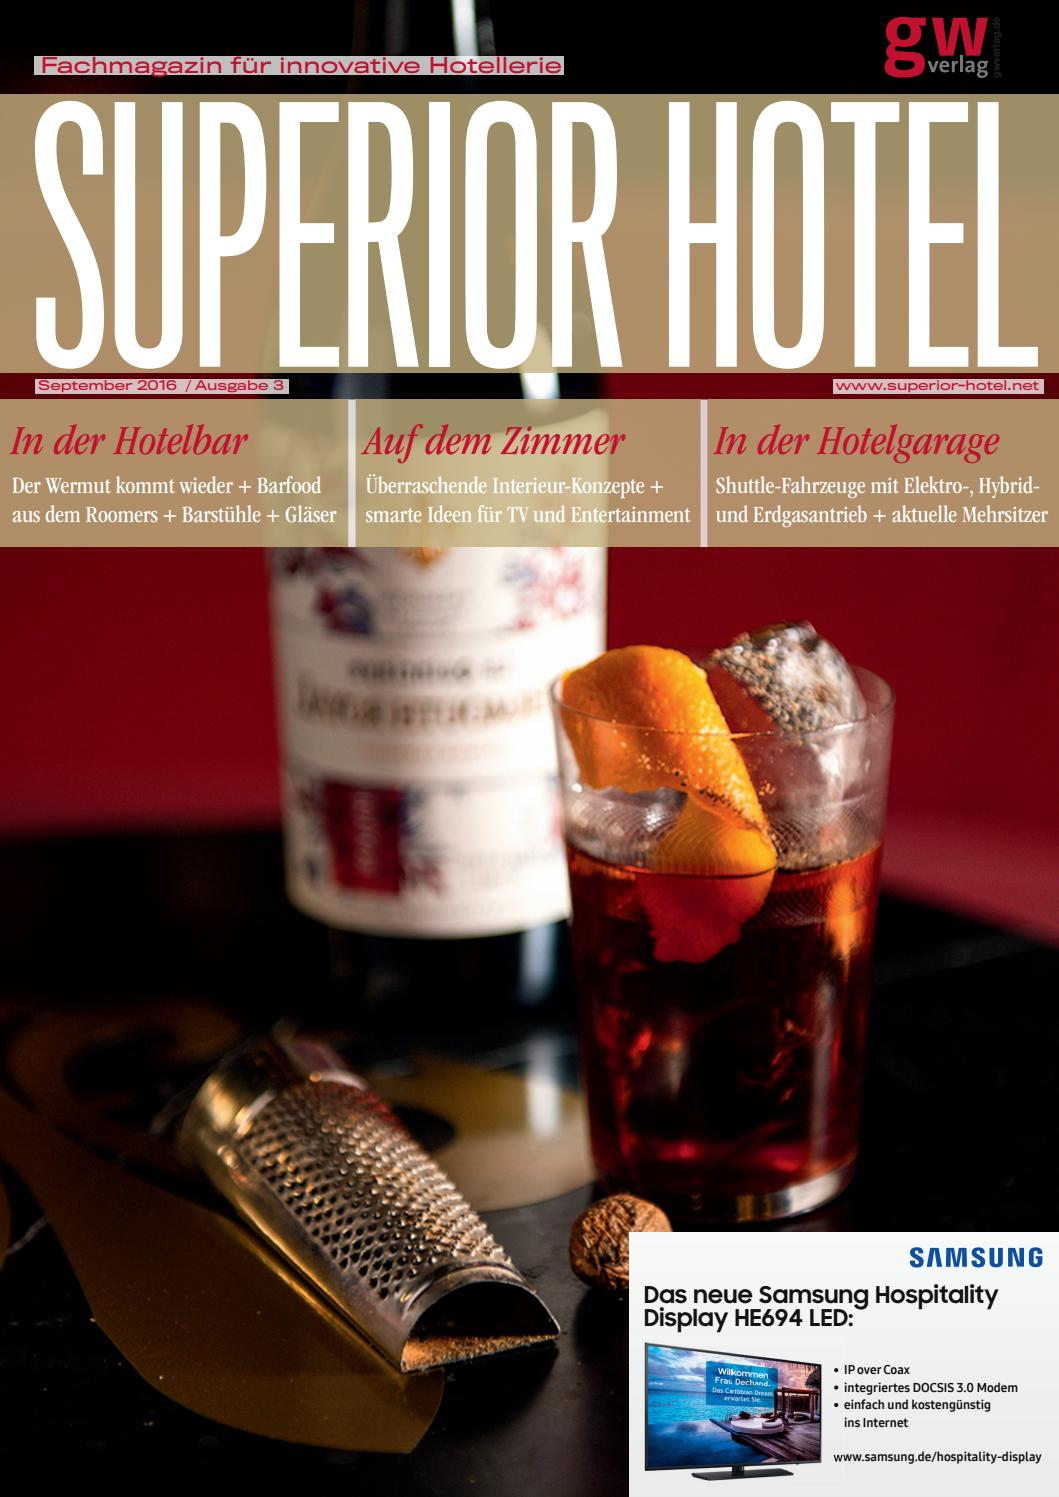 Superior Hotel 3/2016 by GW VERLAG - issuu